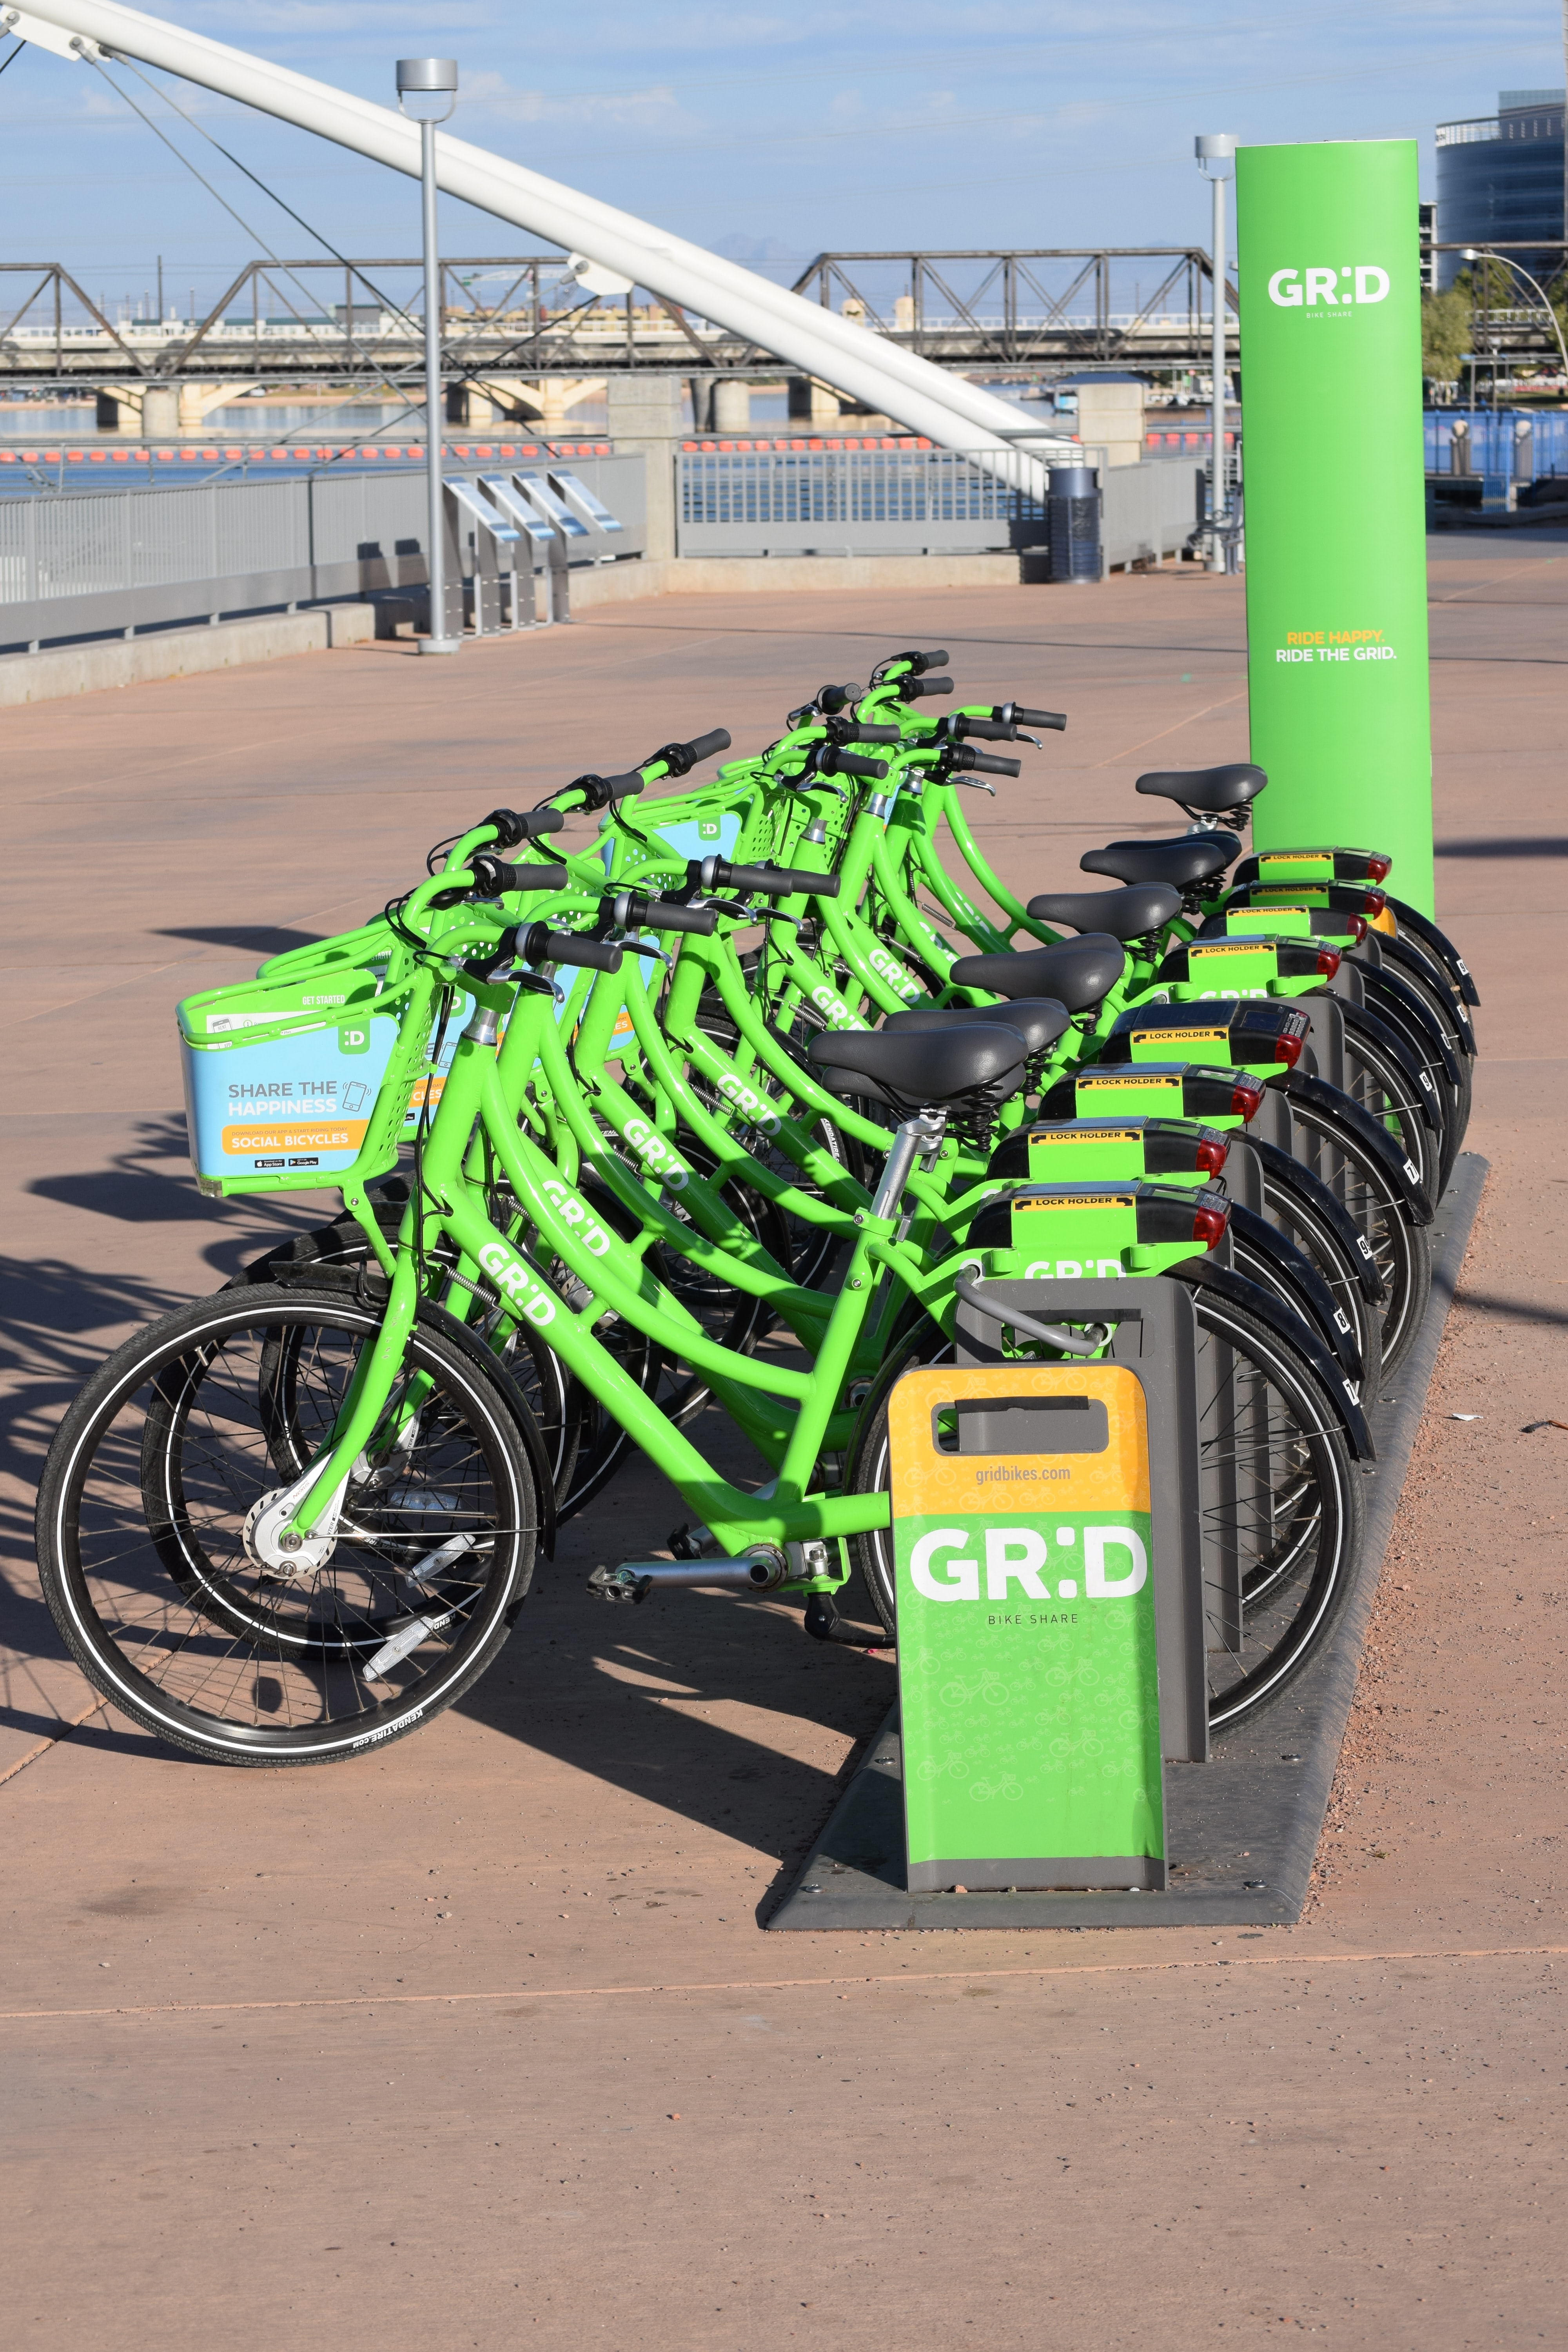 green bicycle parks near GRD post at daytime